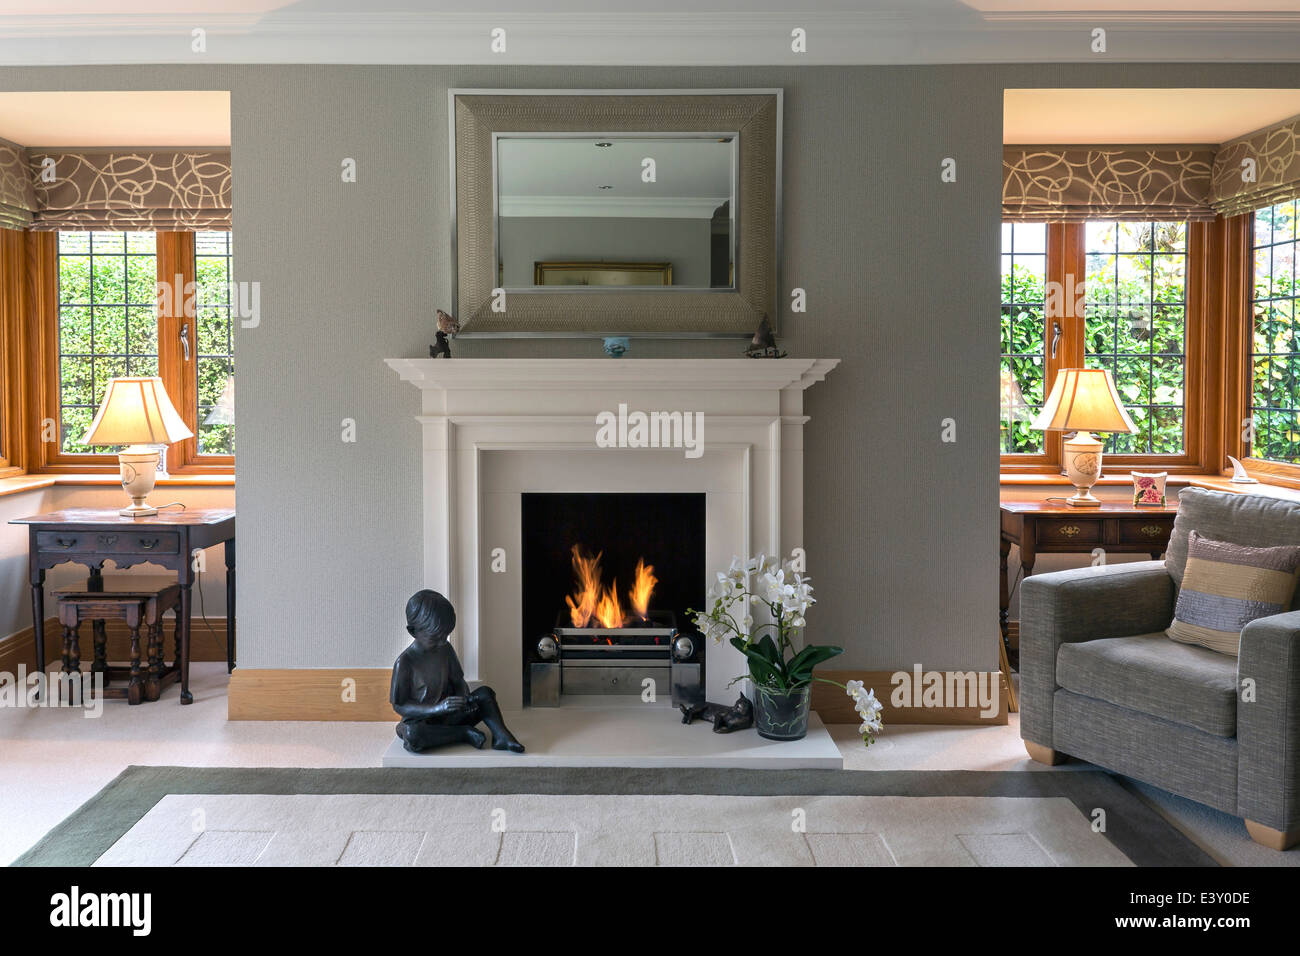 Fireplace and armchair living room - Stock Image